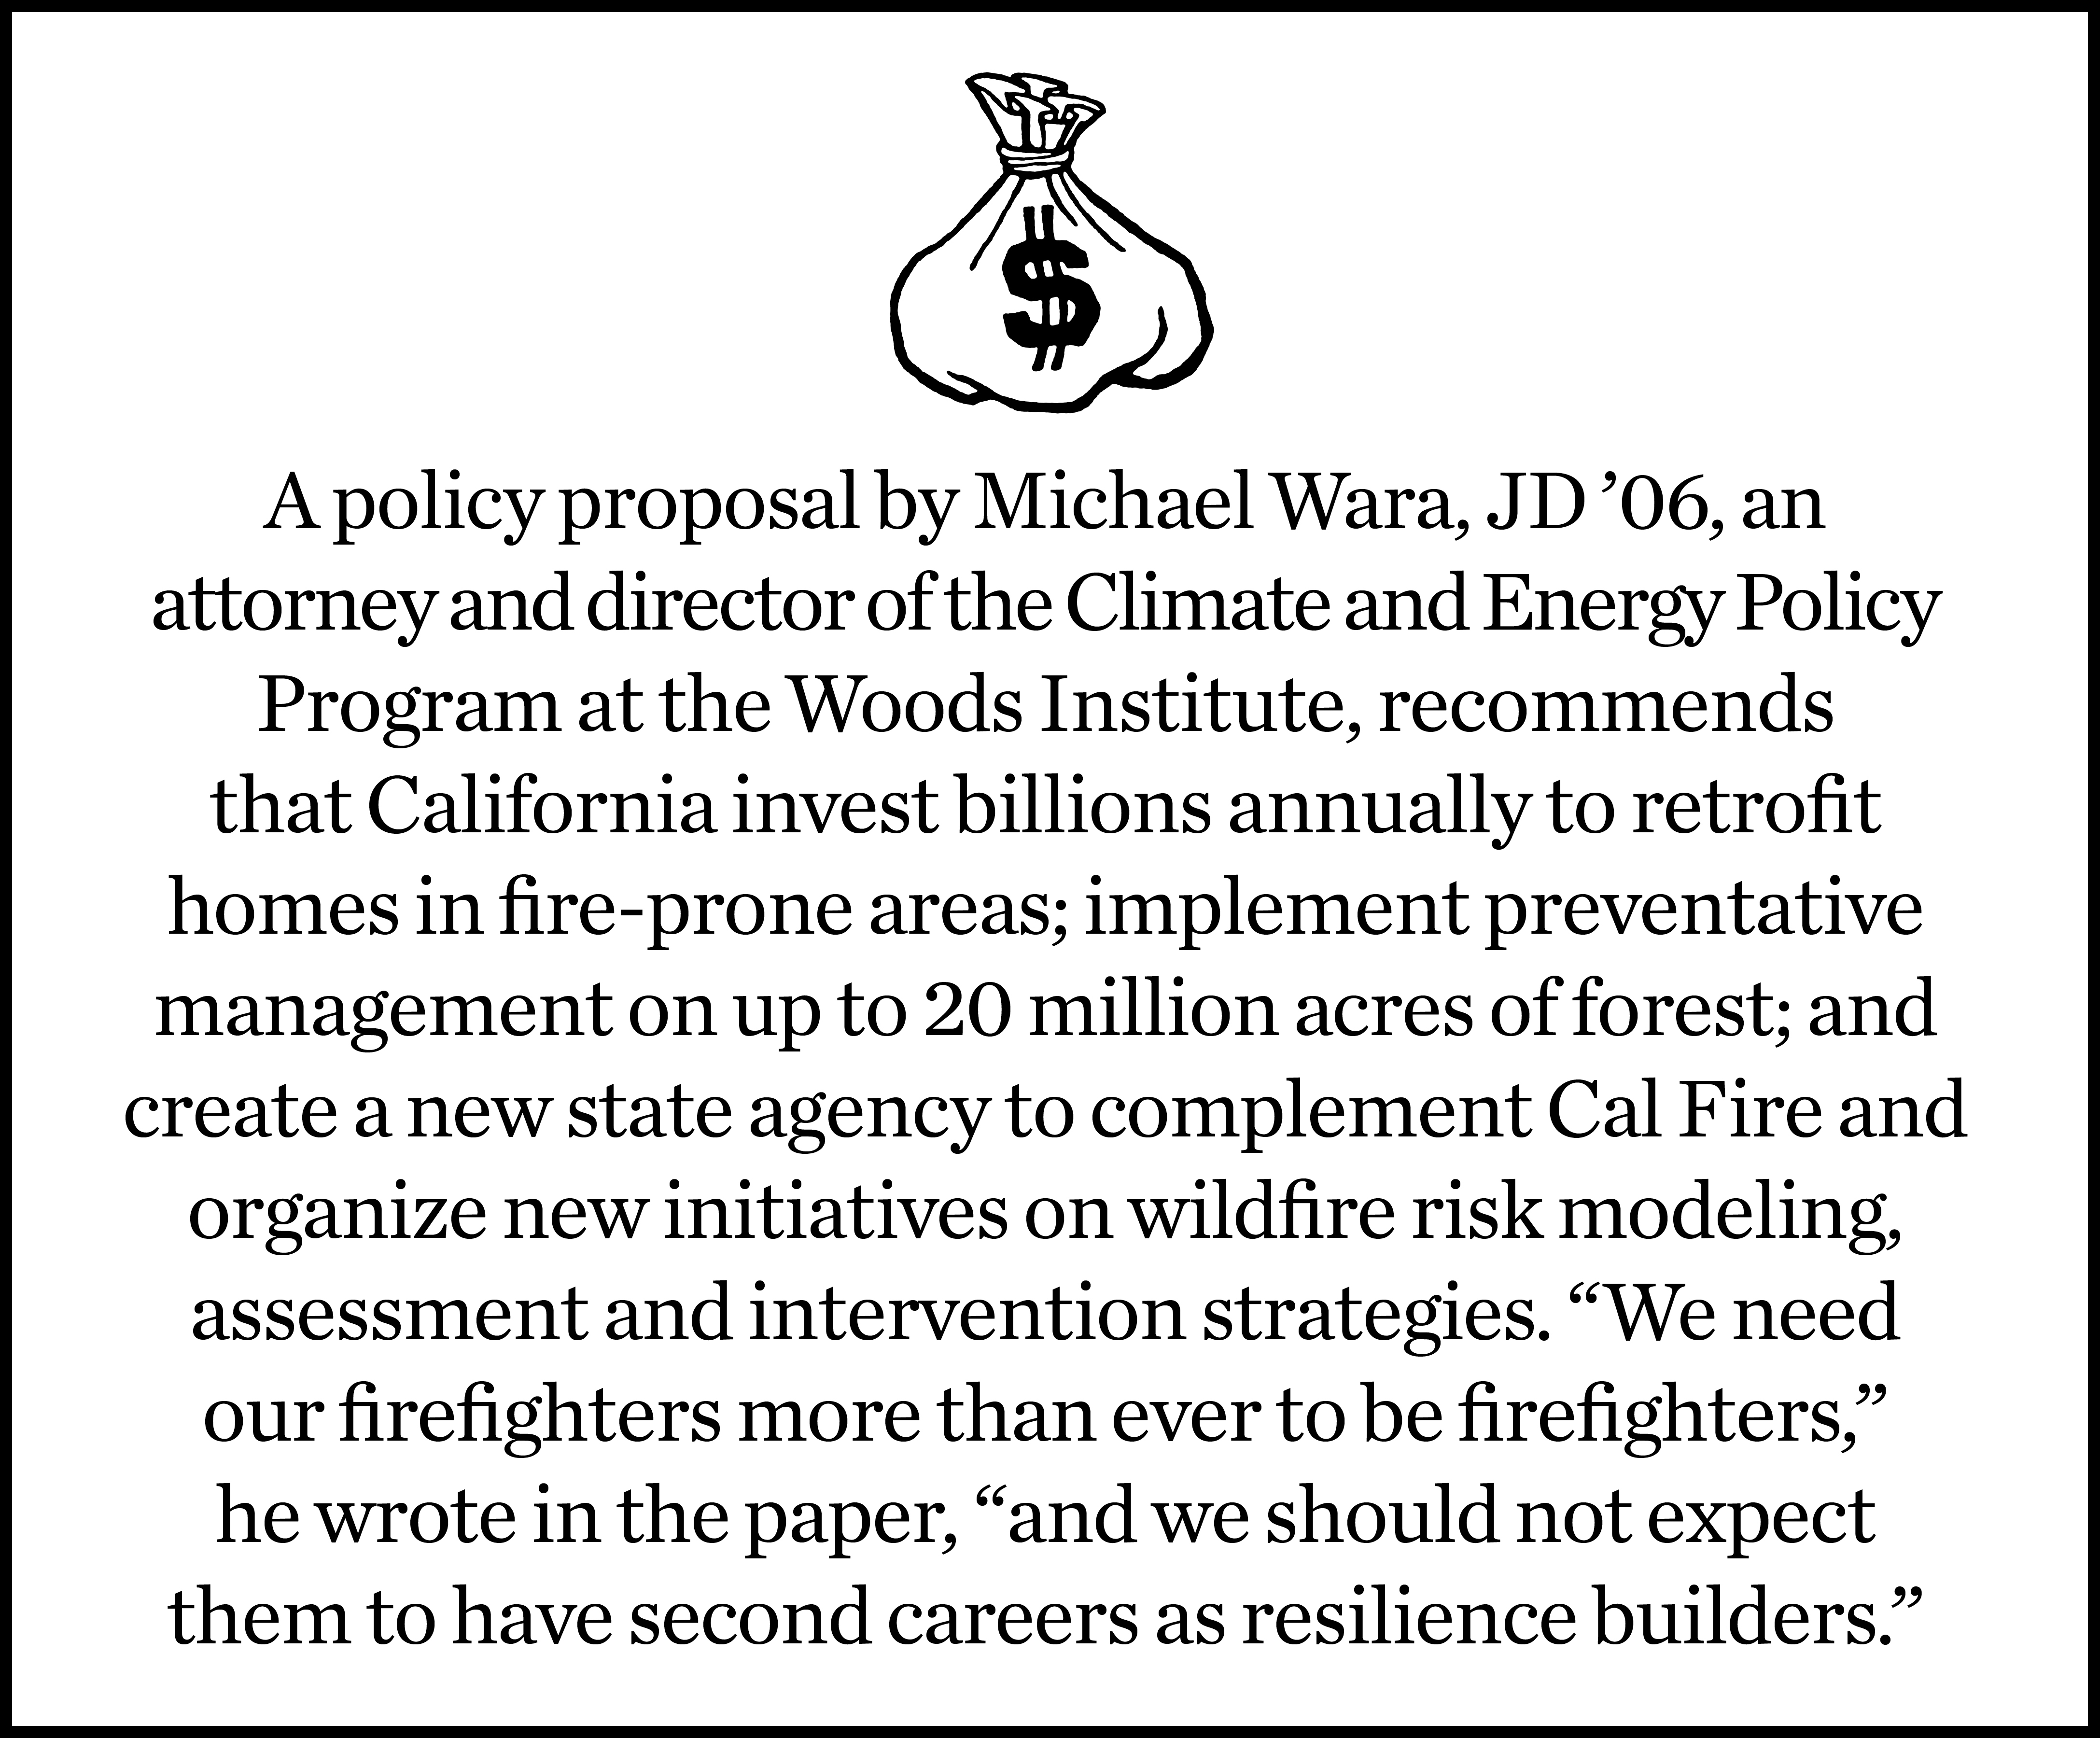 Michael Wara, director of the Climate and Energy Policy Program at the Woods Institute, recommends steps to protect Californians from wildfire. They would cost approximately $3 billion.